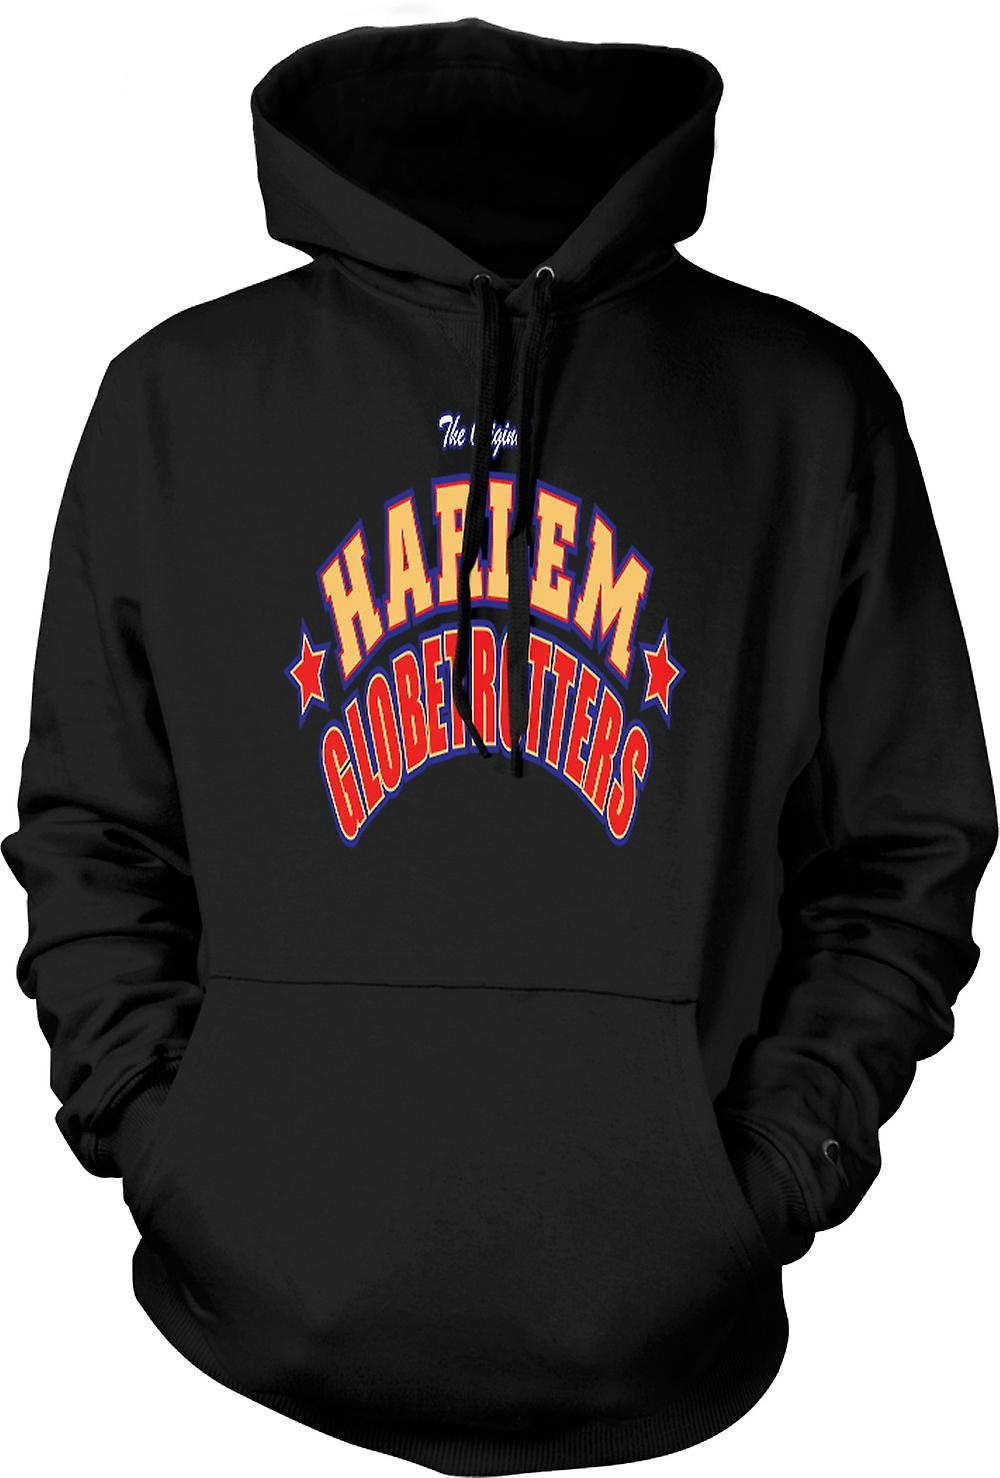 Para hombre con capucha - Harlem Globetrotters - baloncesto